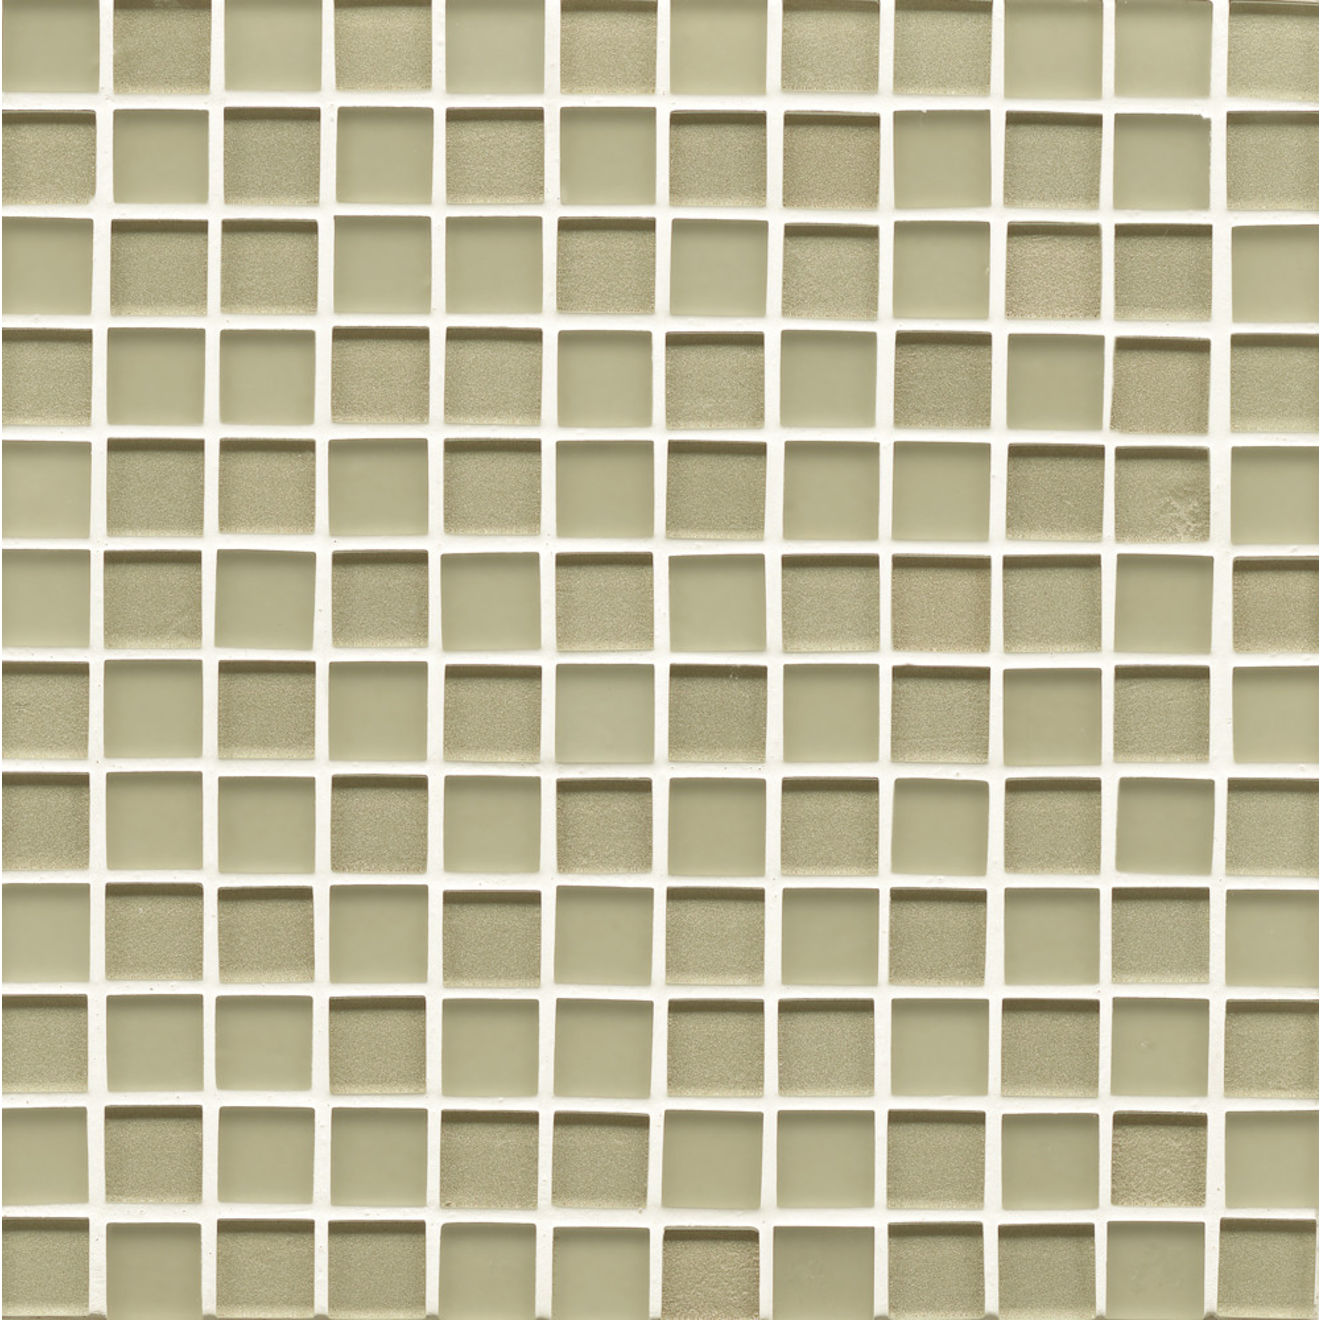 "Manhattan 1"" x 1"" Wall Mosaic in Pistachio"